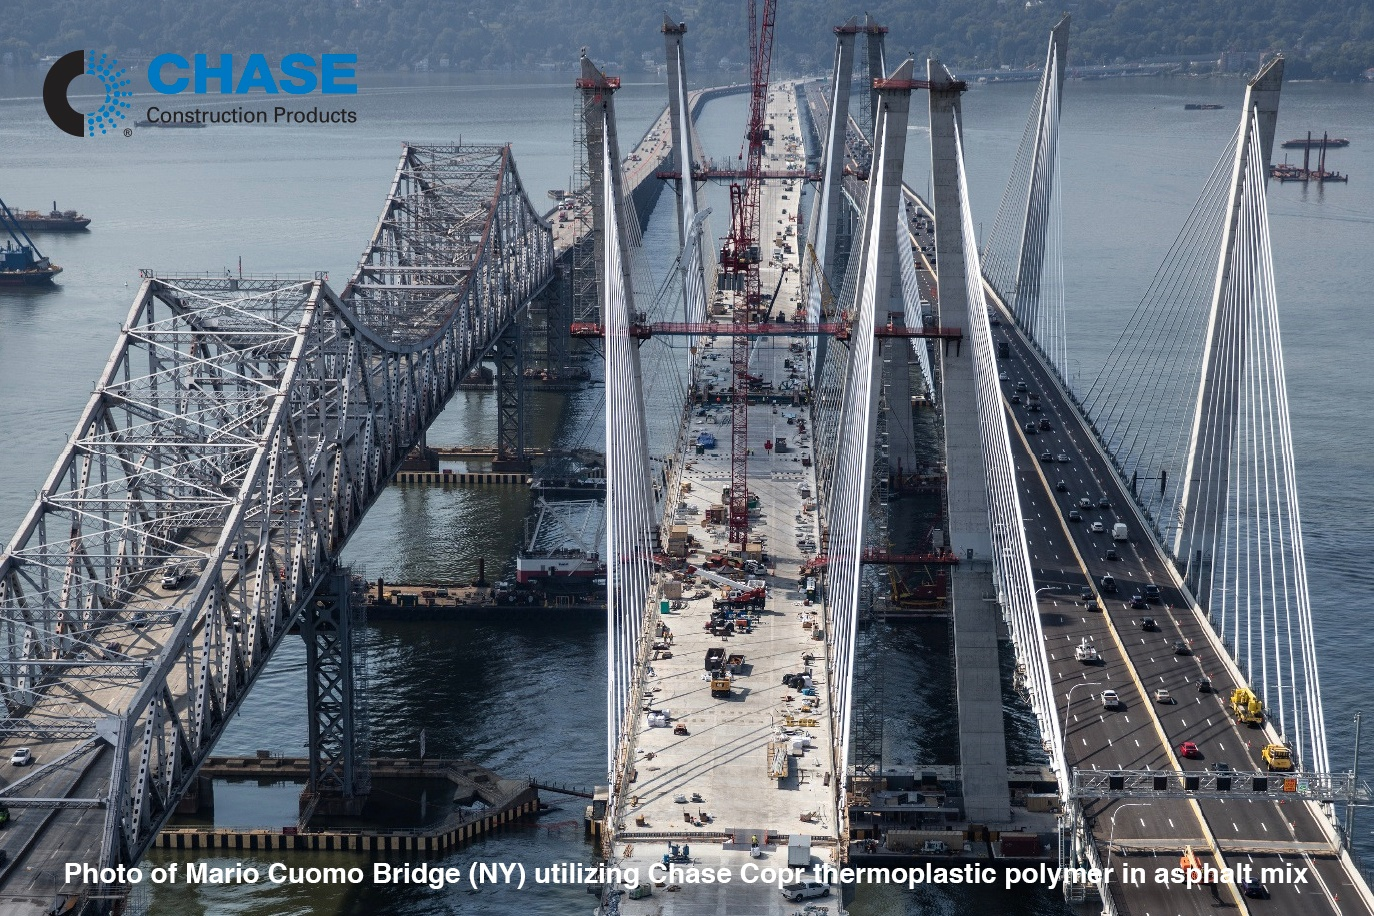 Photo of Mario Cuomo Bridge (NY) utilizing Chase Corporation thermoplastic polymer in asphalt mix.jpg